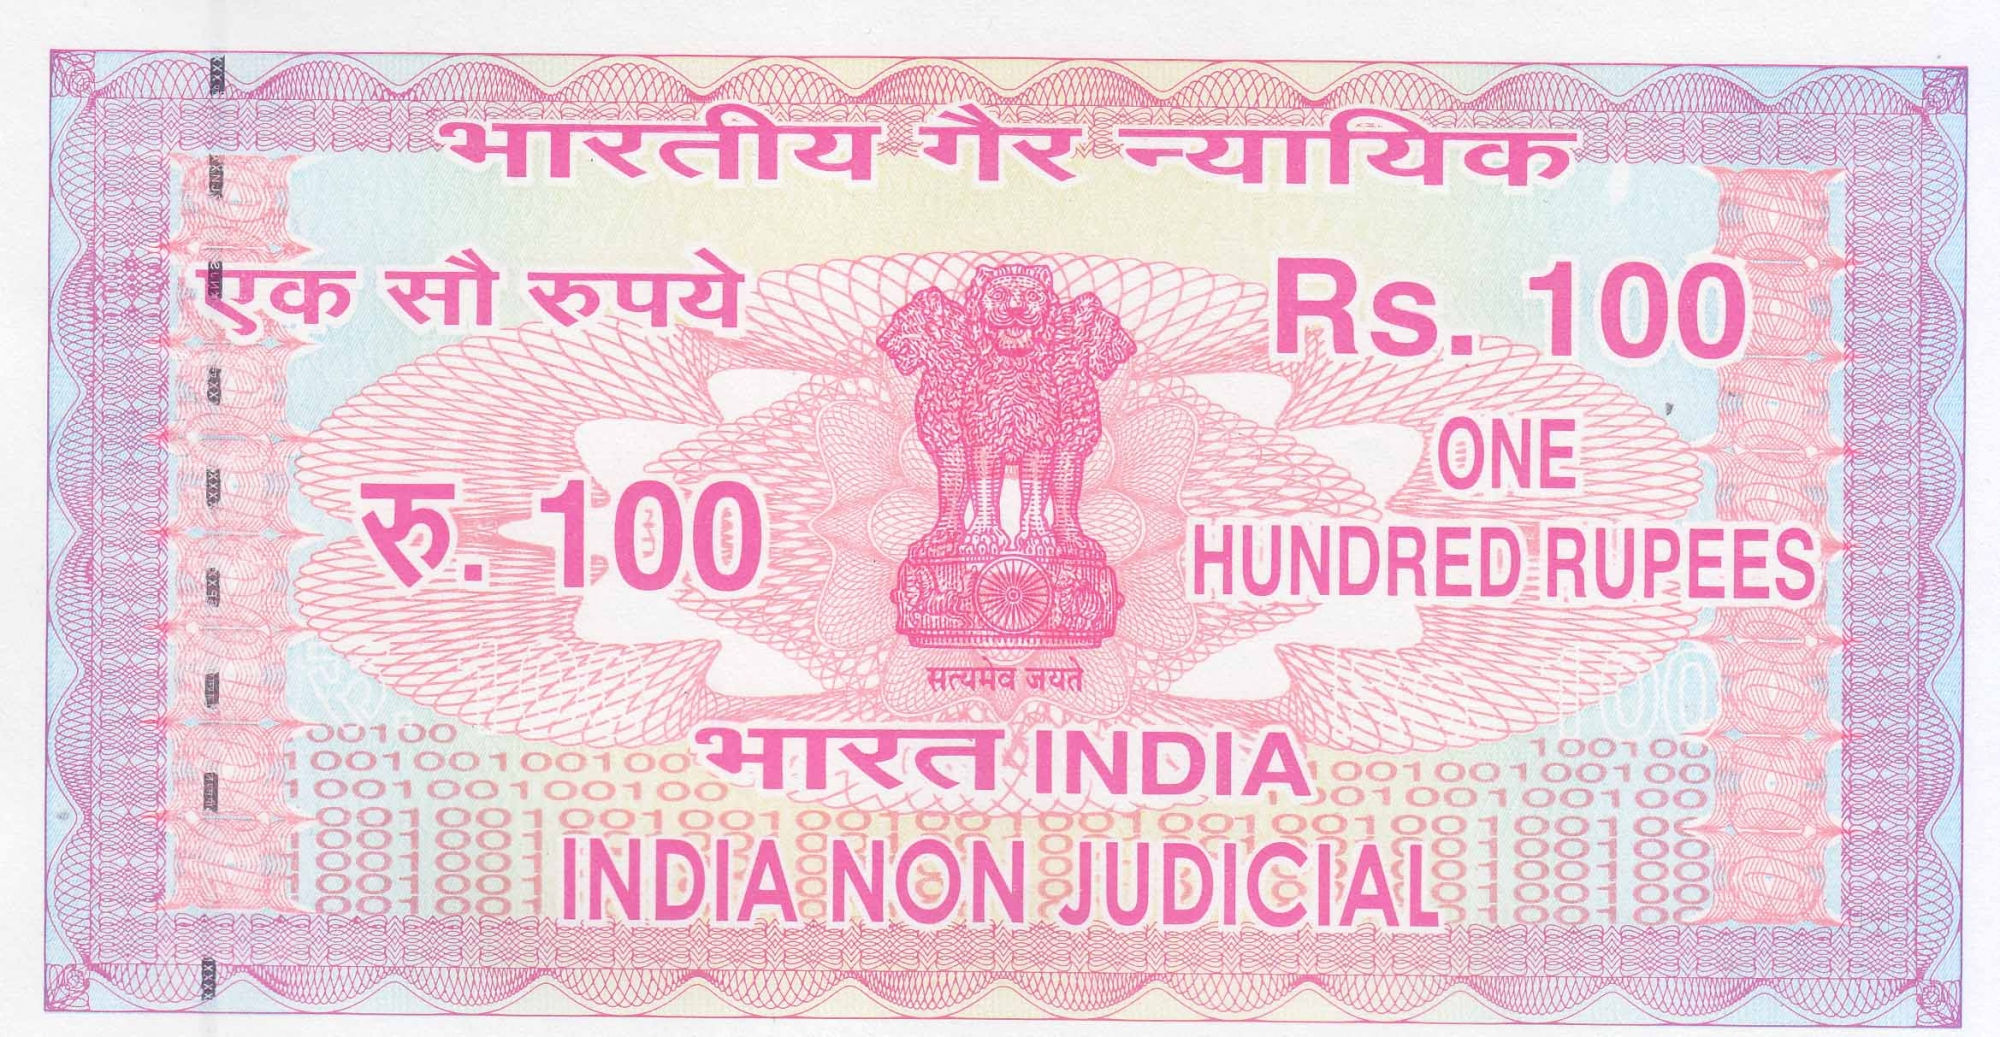 Generate a stamp certificate hassle-free through e-stamp paper online